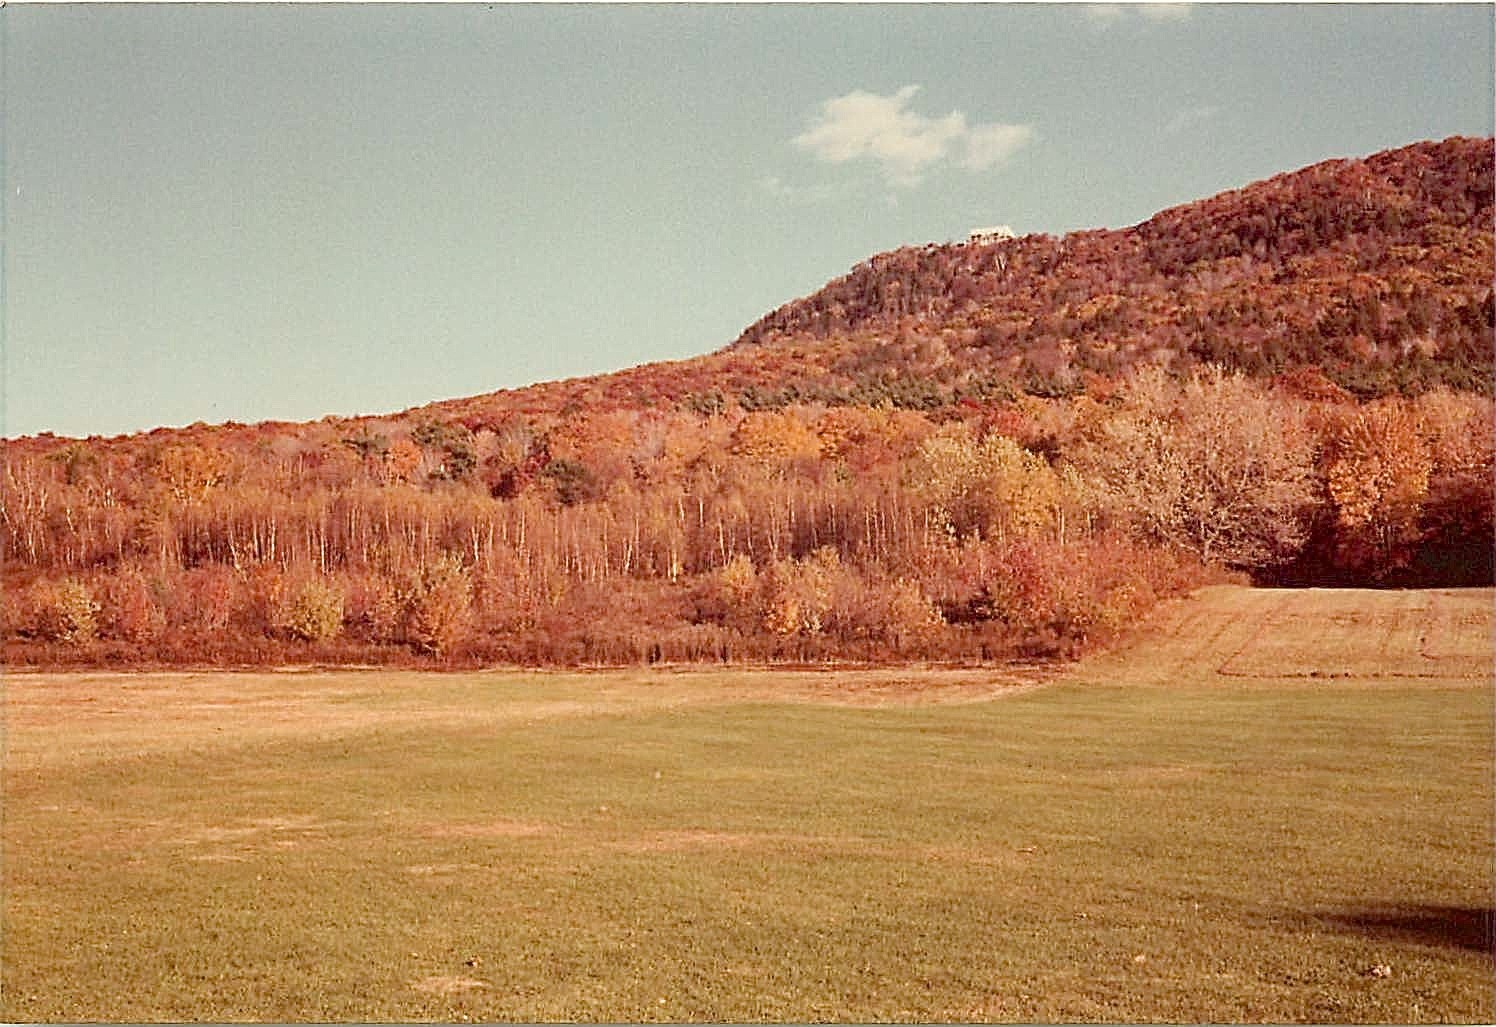 Mt. Holyoke, near Northampton, MA  1978